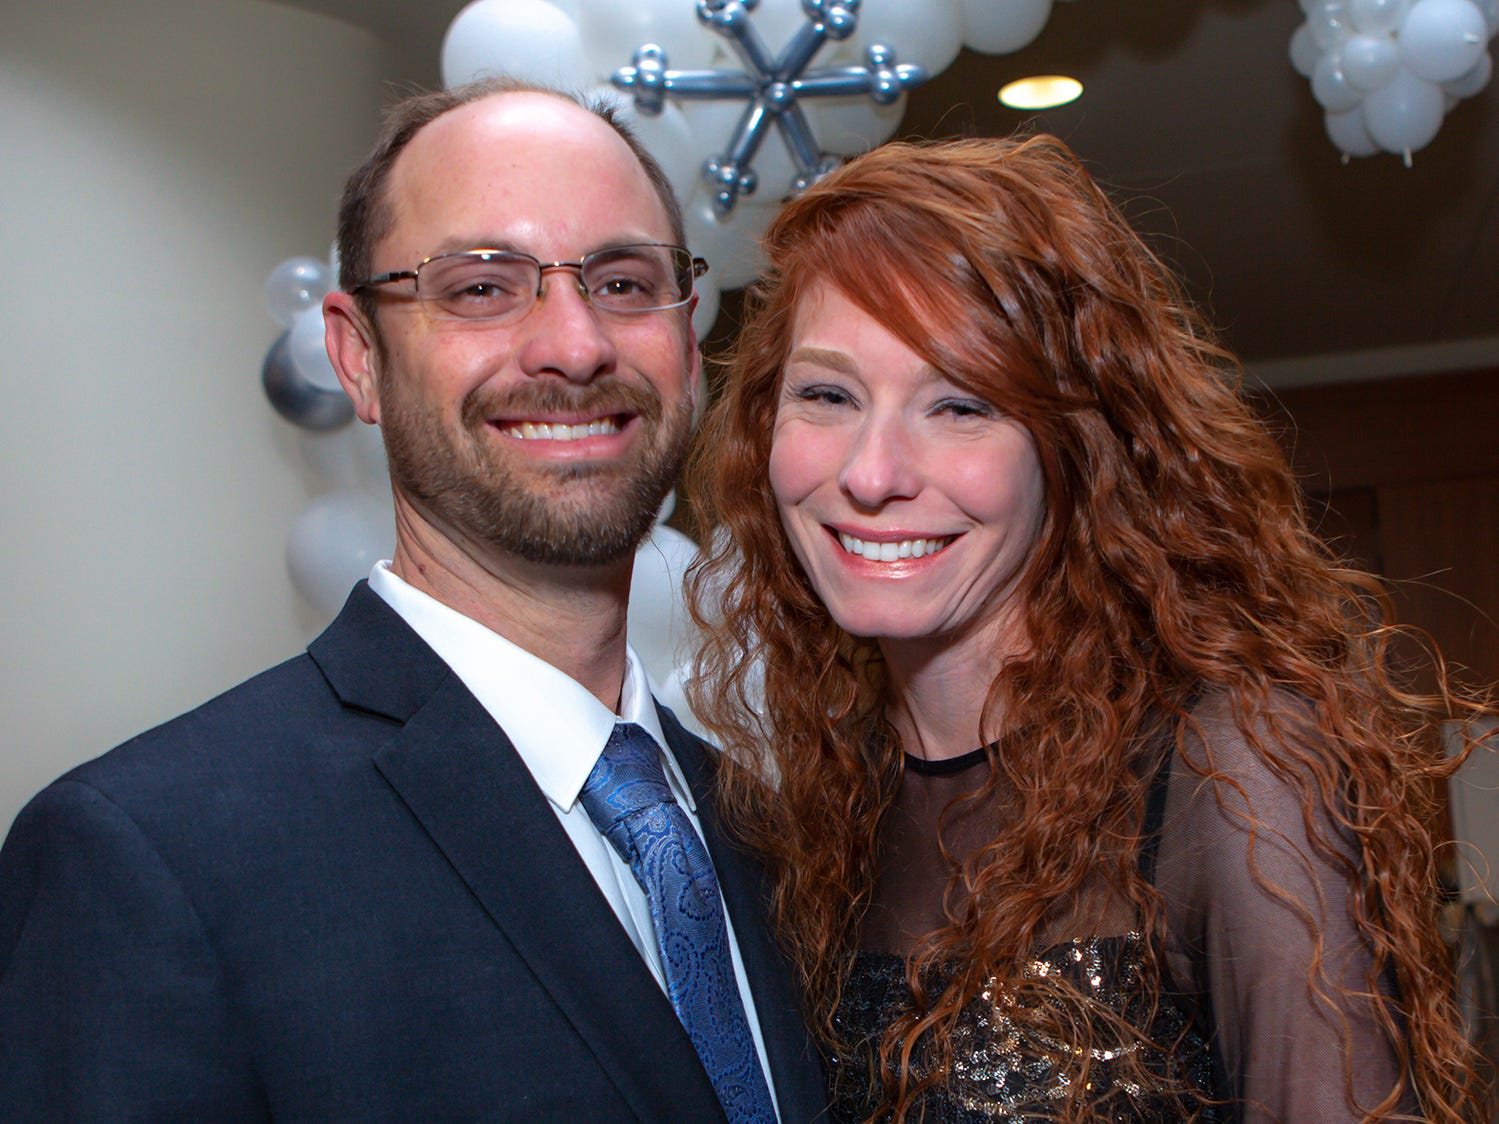 Andrew and Rebecca Young at the 2019 Excellence in Education Gala, hosted by the City Schools Foundation on Friday, Jan. 25, 2019 at Stones River Country Club in Murfreesboro.